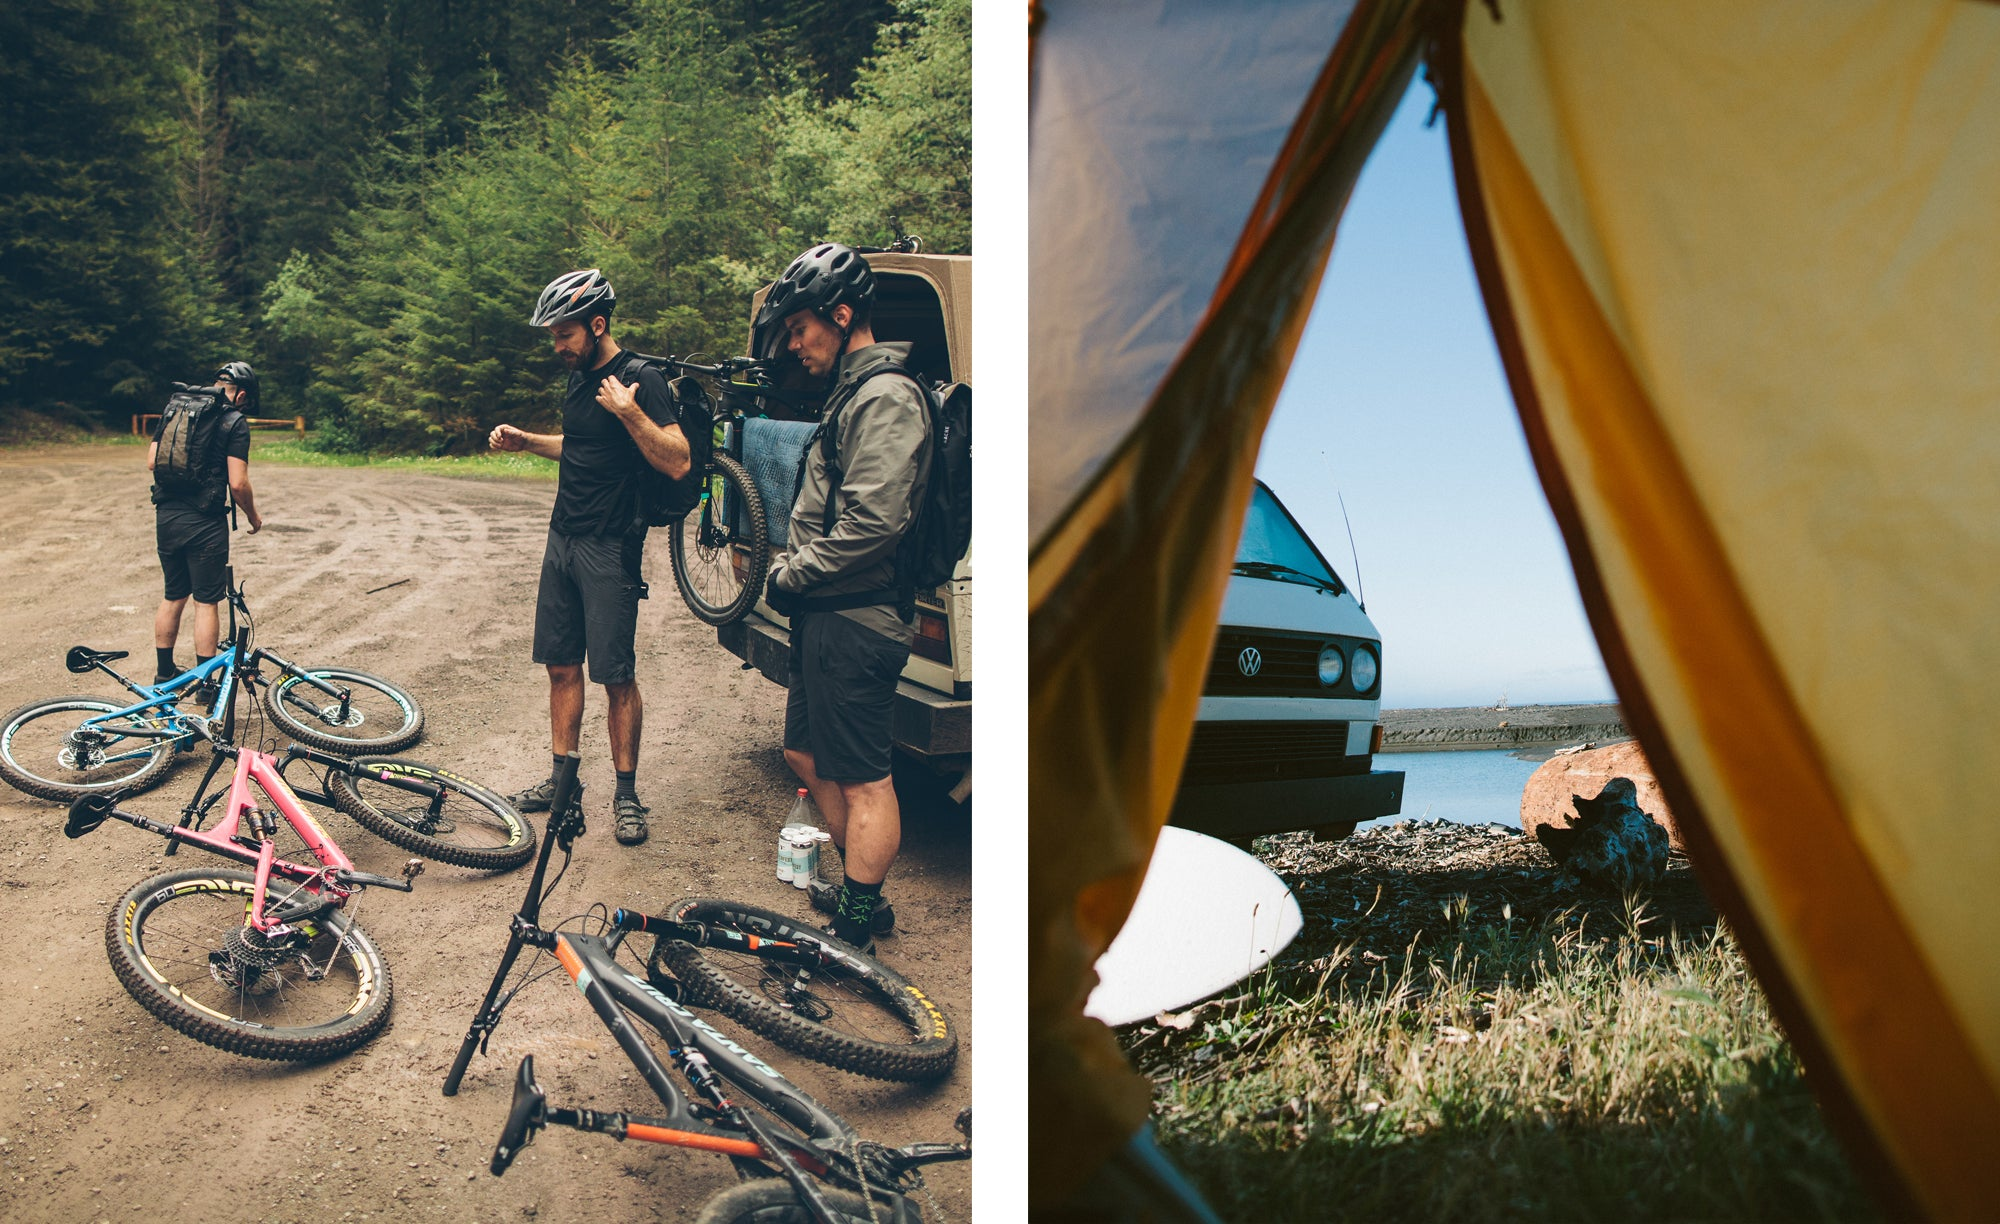 Mission Workshop x Taylor Stitch Collaboration. 10 Pieces - 1 Field test. No Reception. Field Test Ft. Landon Masterfield, Derek Roedel, Ty Williams, Dustin Beatty, Sashwa Burrous, Justin Lewis, Michael Armenta, Brian Larson, Santa Cruz Bicycles, Yeti Coolers, Danner Boots, Clif Bar